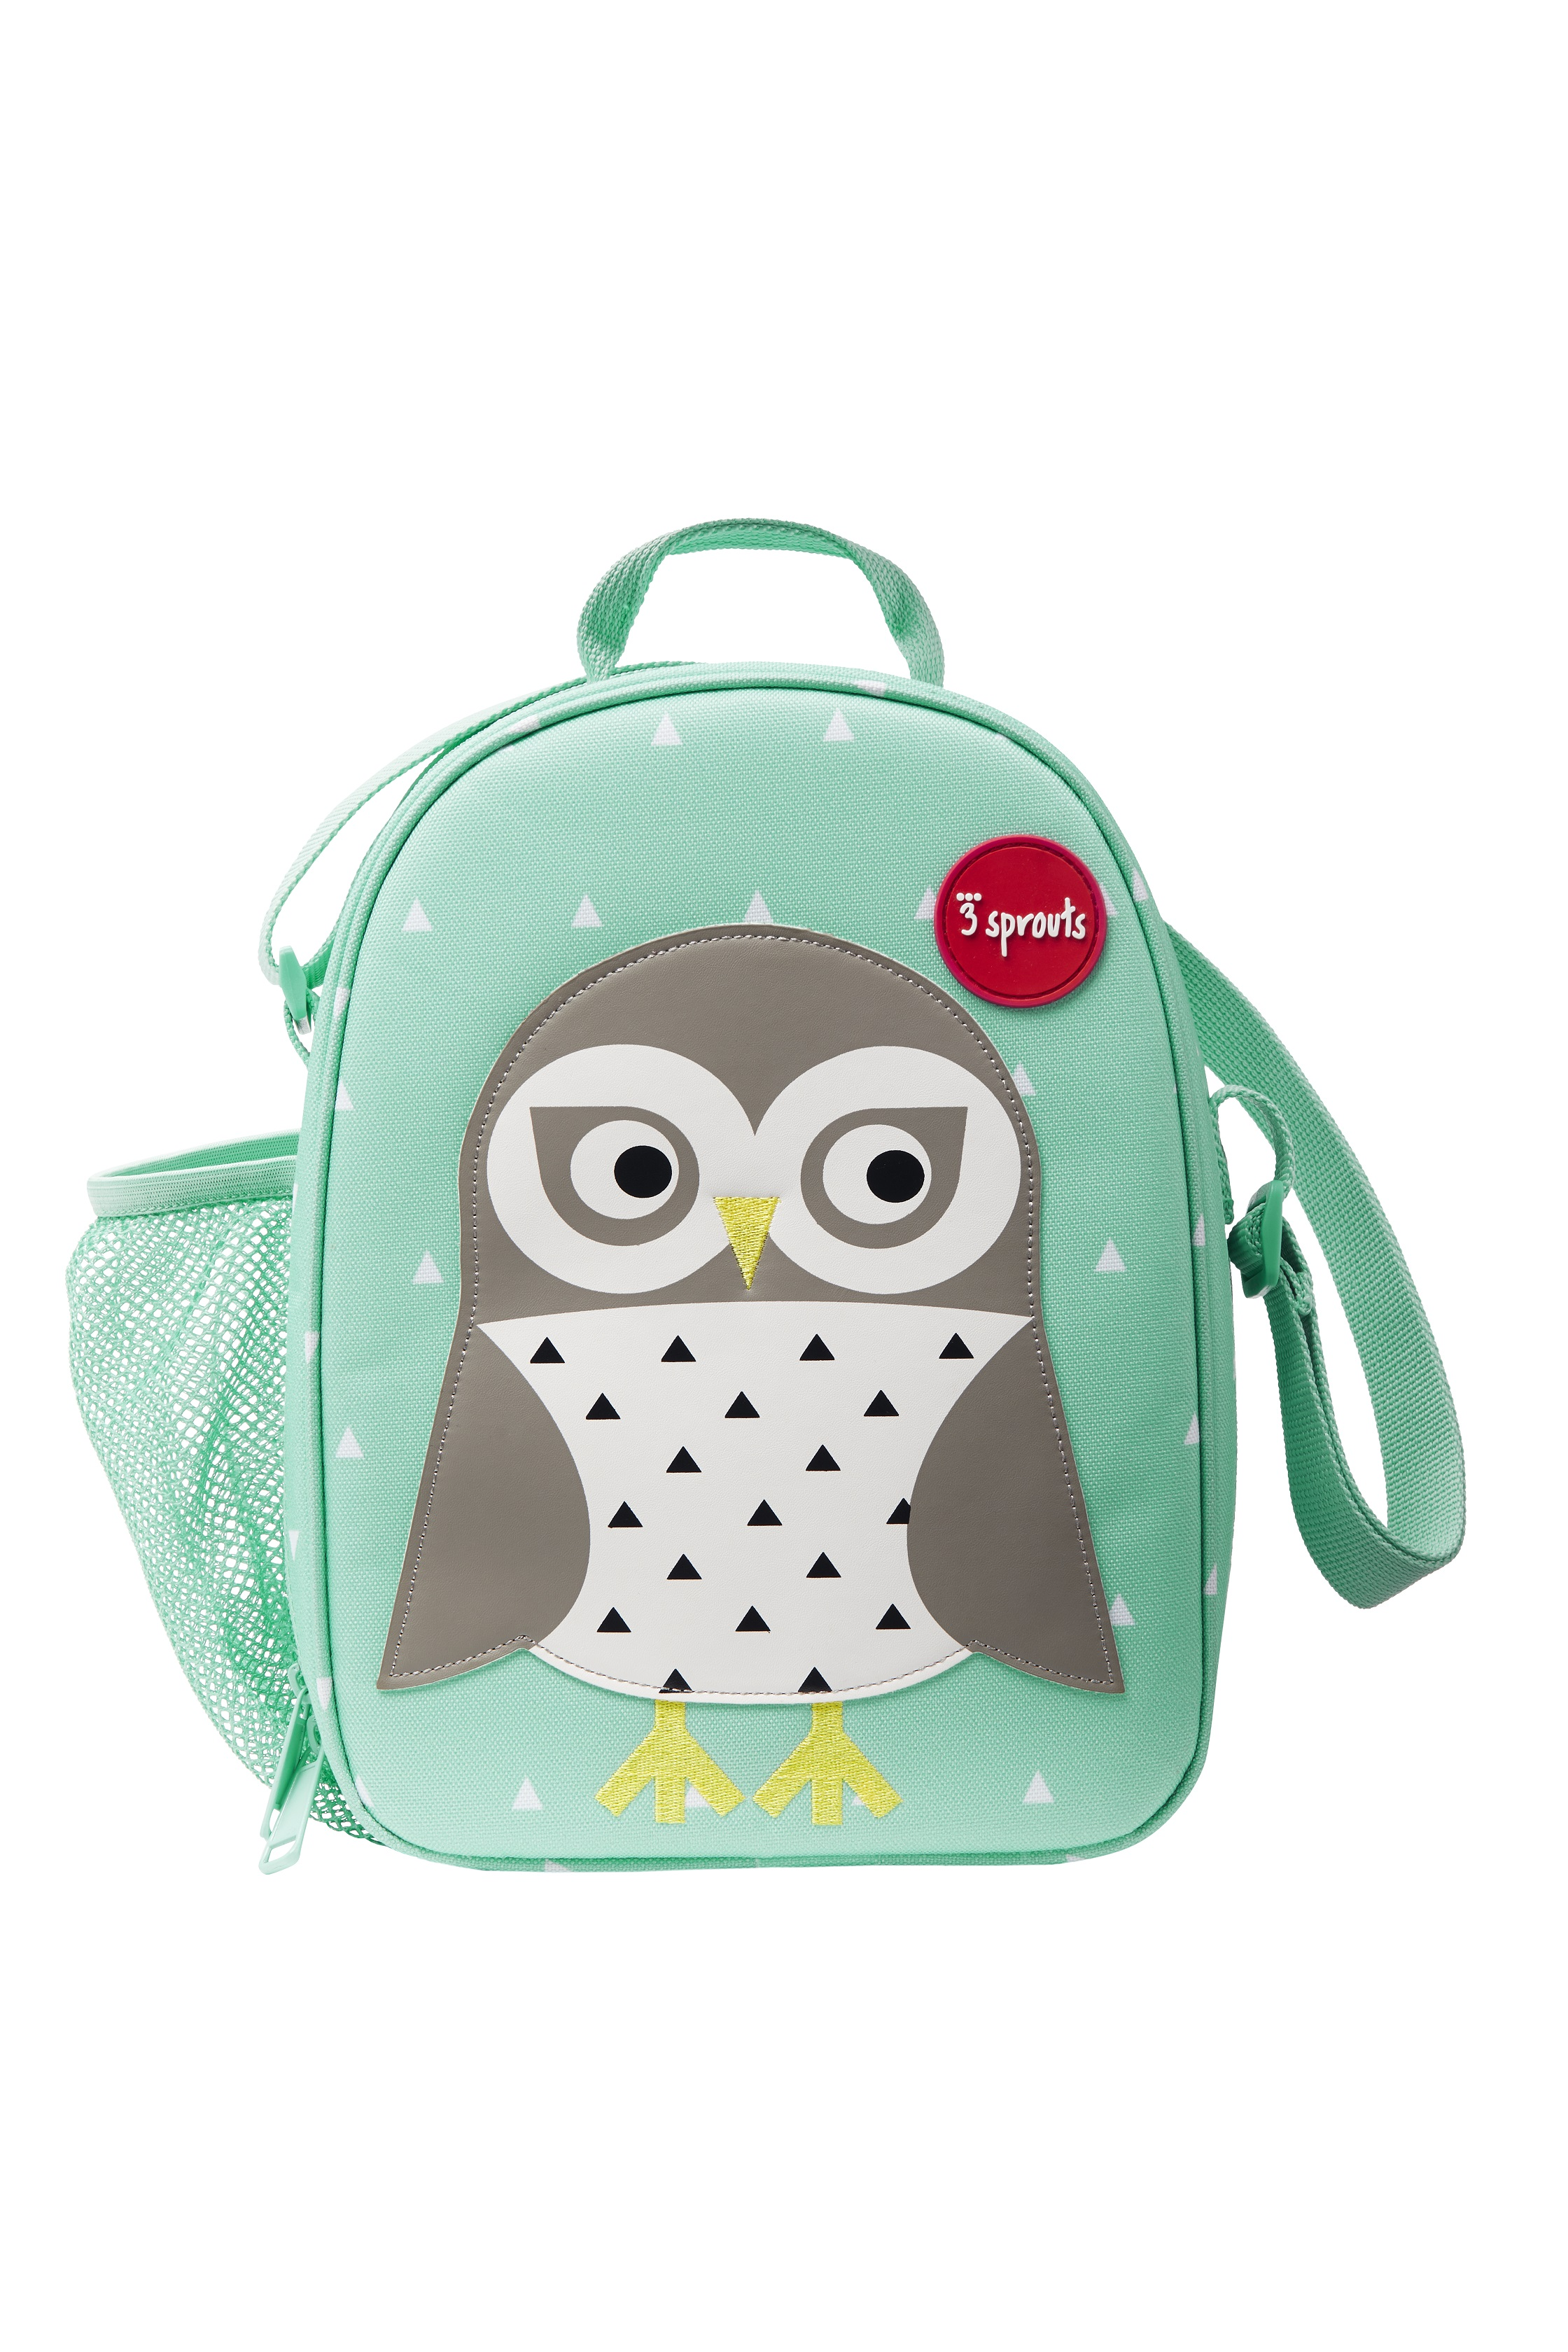 3 Sprouts - Lunch Bag - Mint Owl